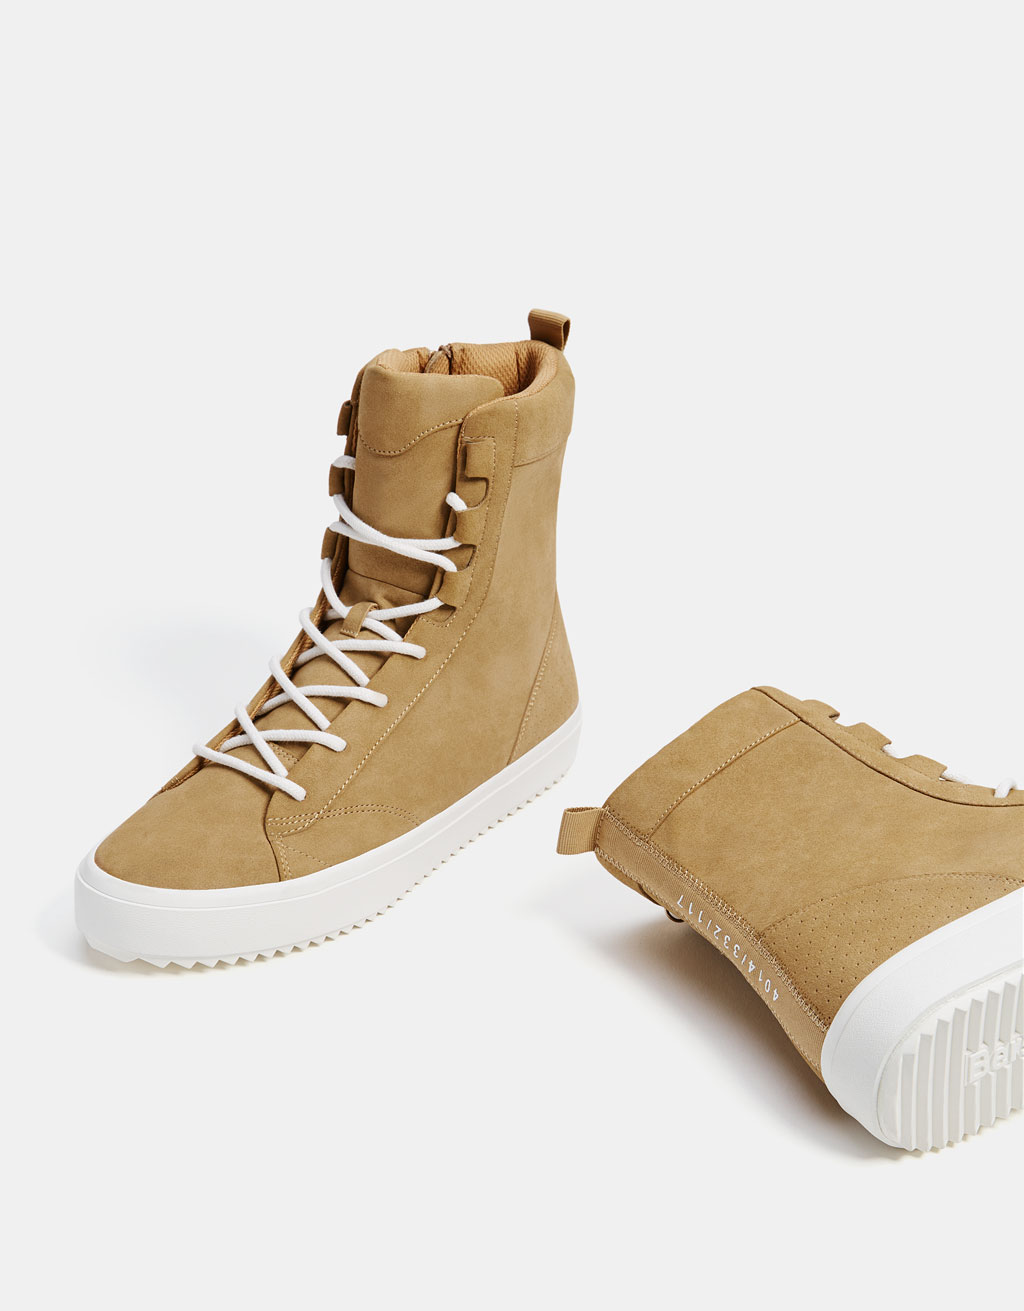 Men's monochrome high-top trainers